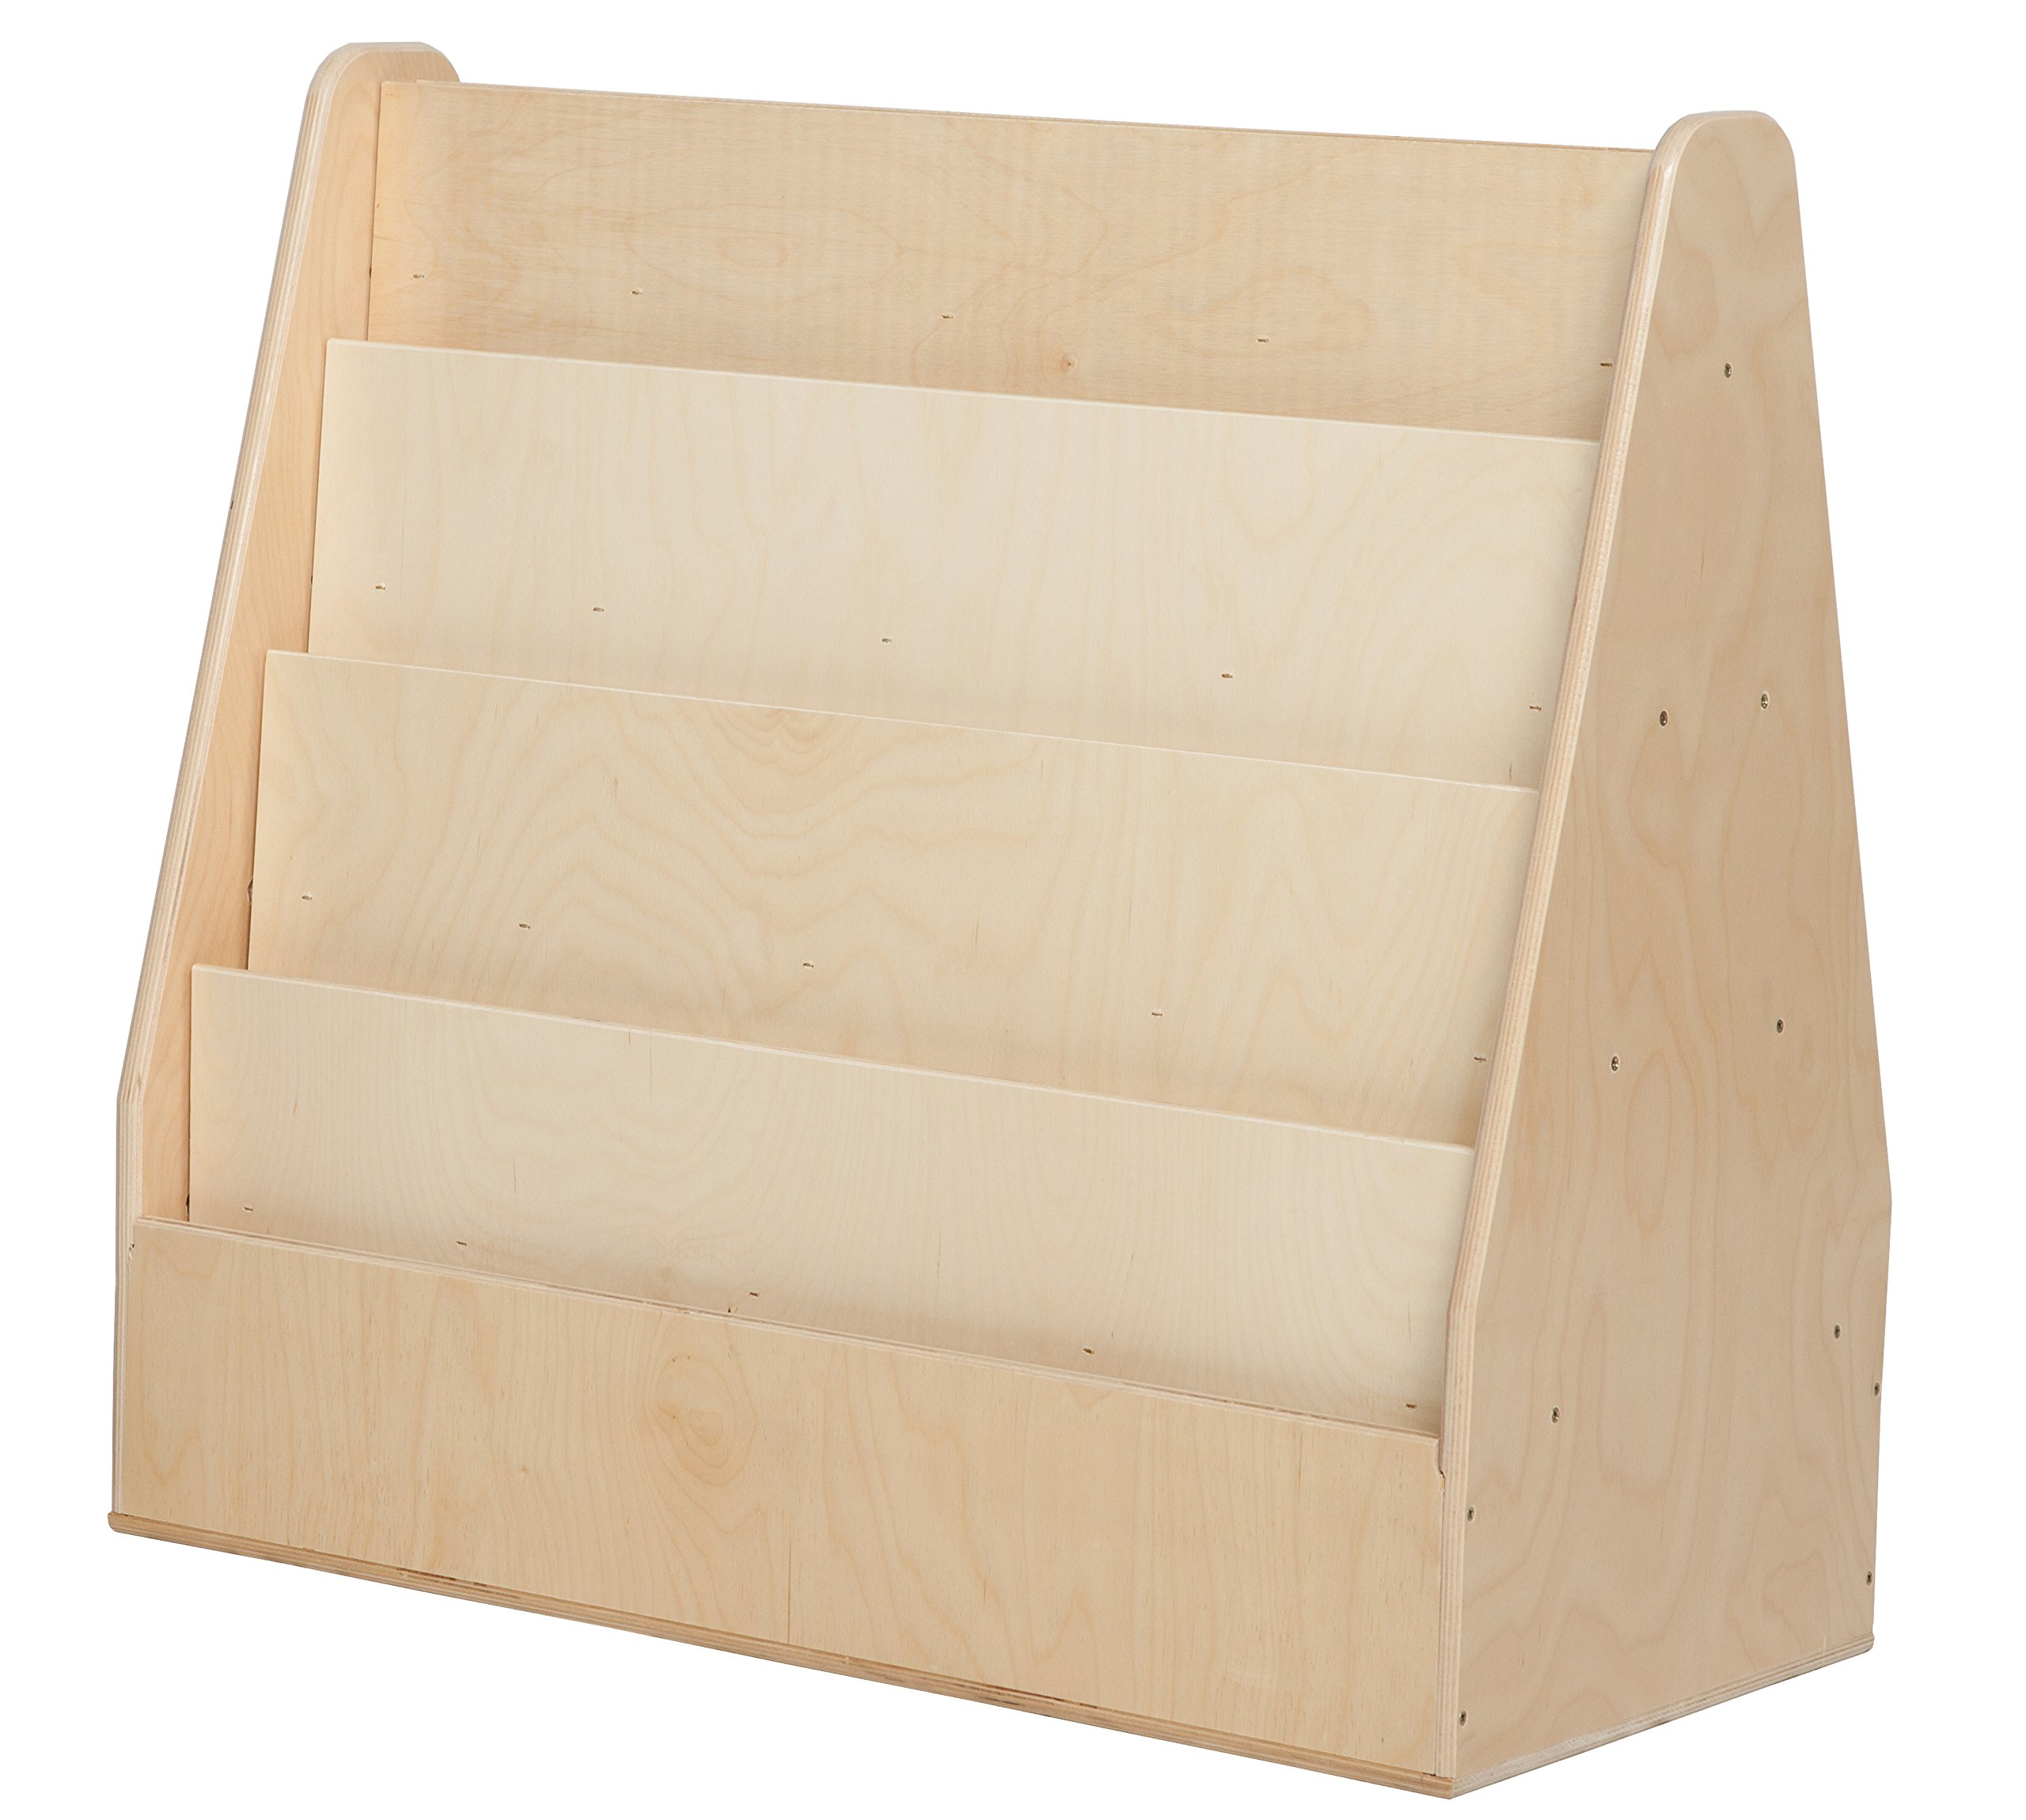 Wood Designs 34200 Double Sided Book Display, 29'' Height, 32'' Width, 17'' Length